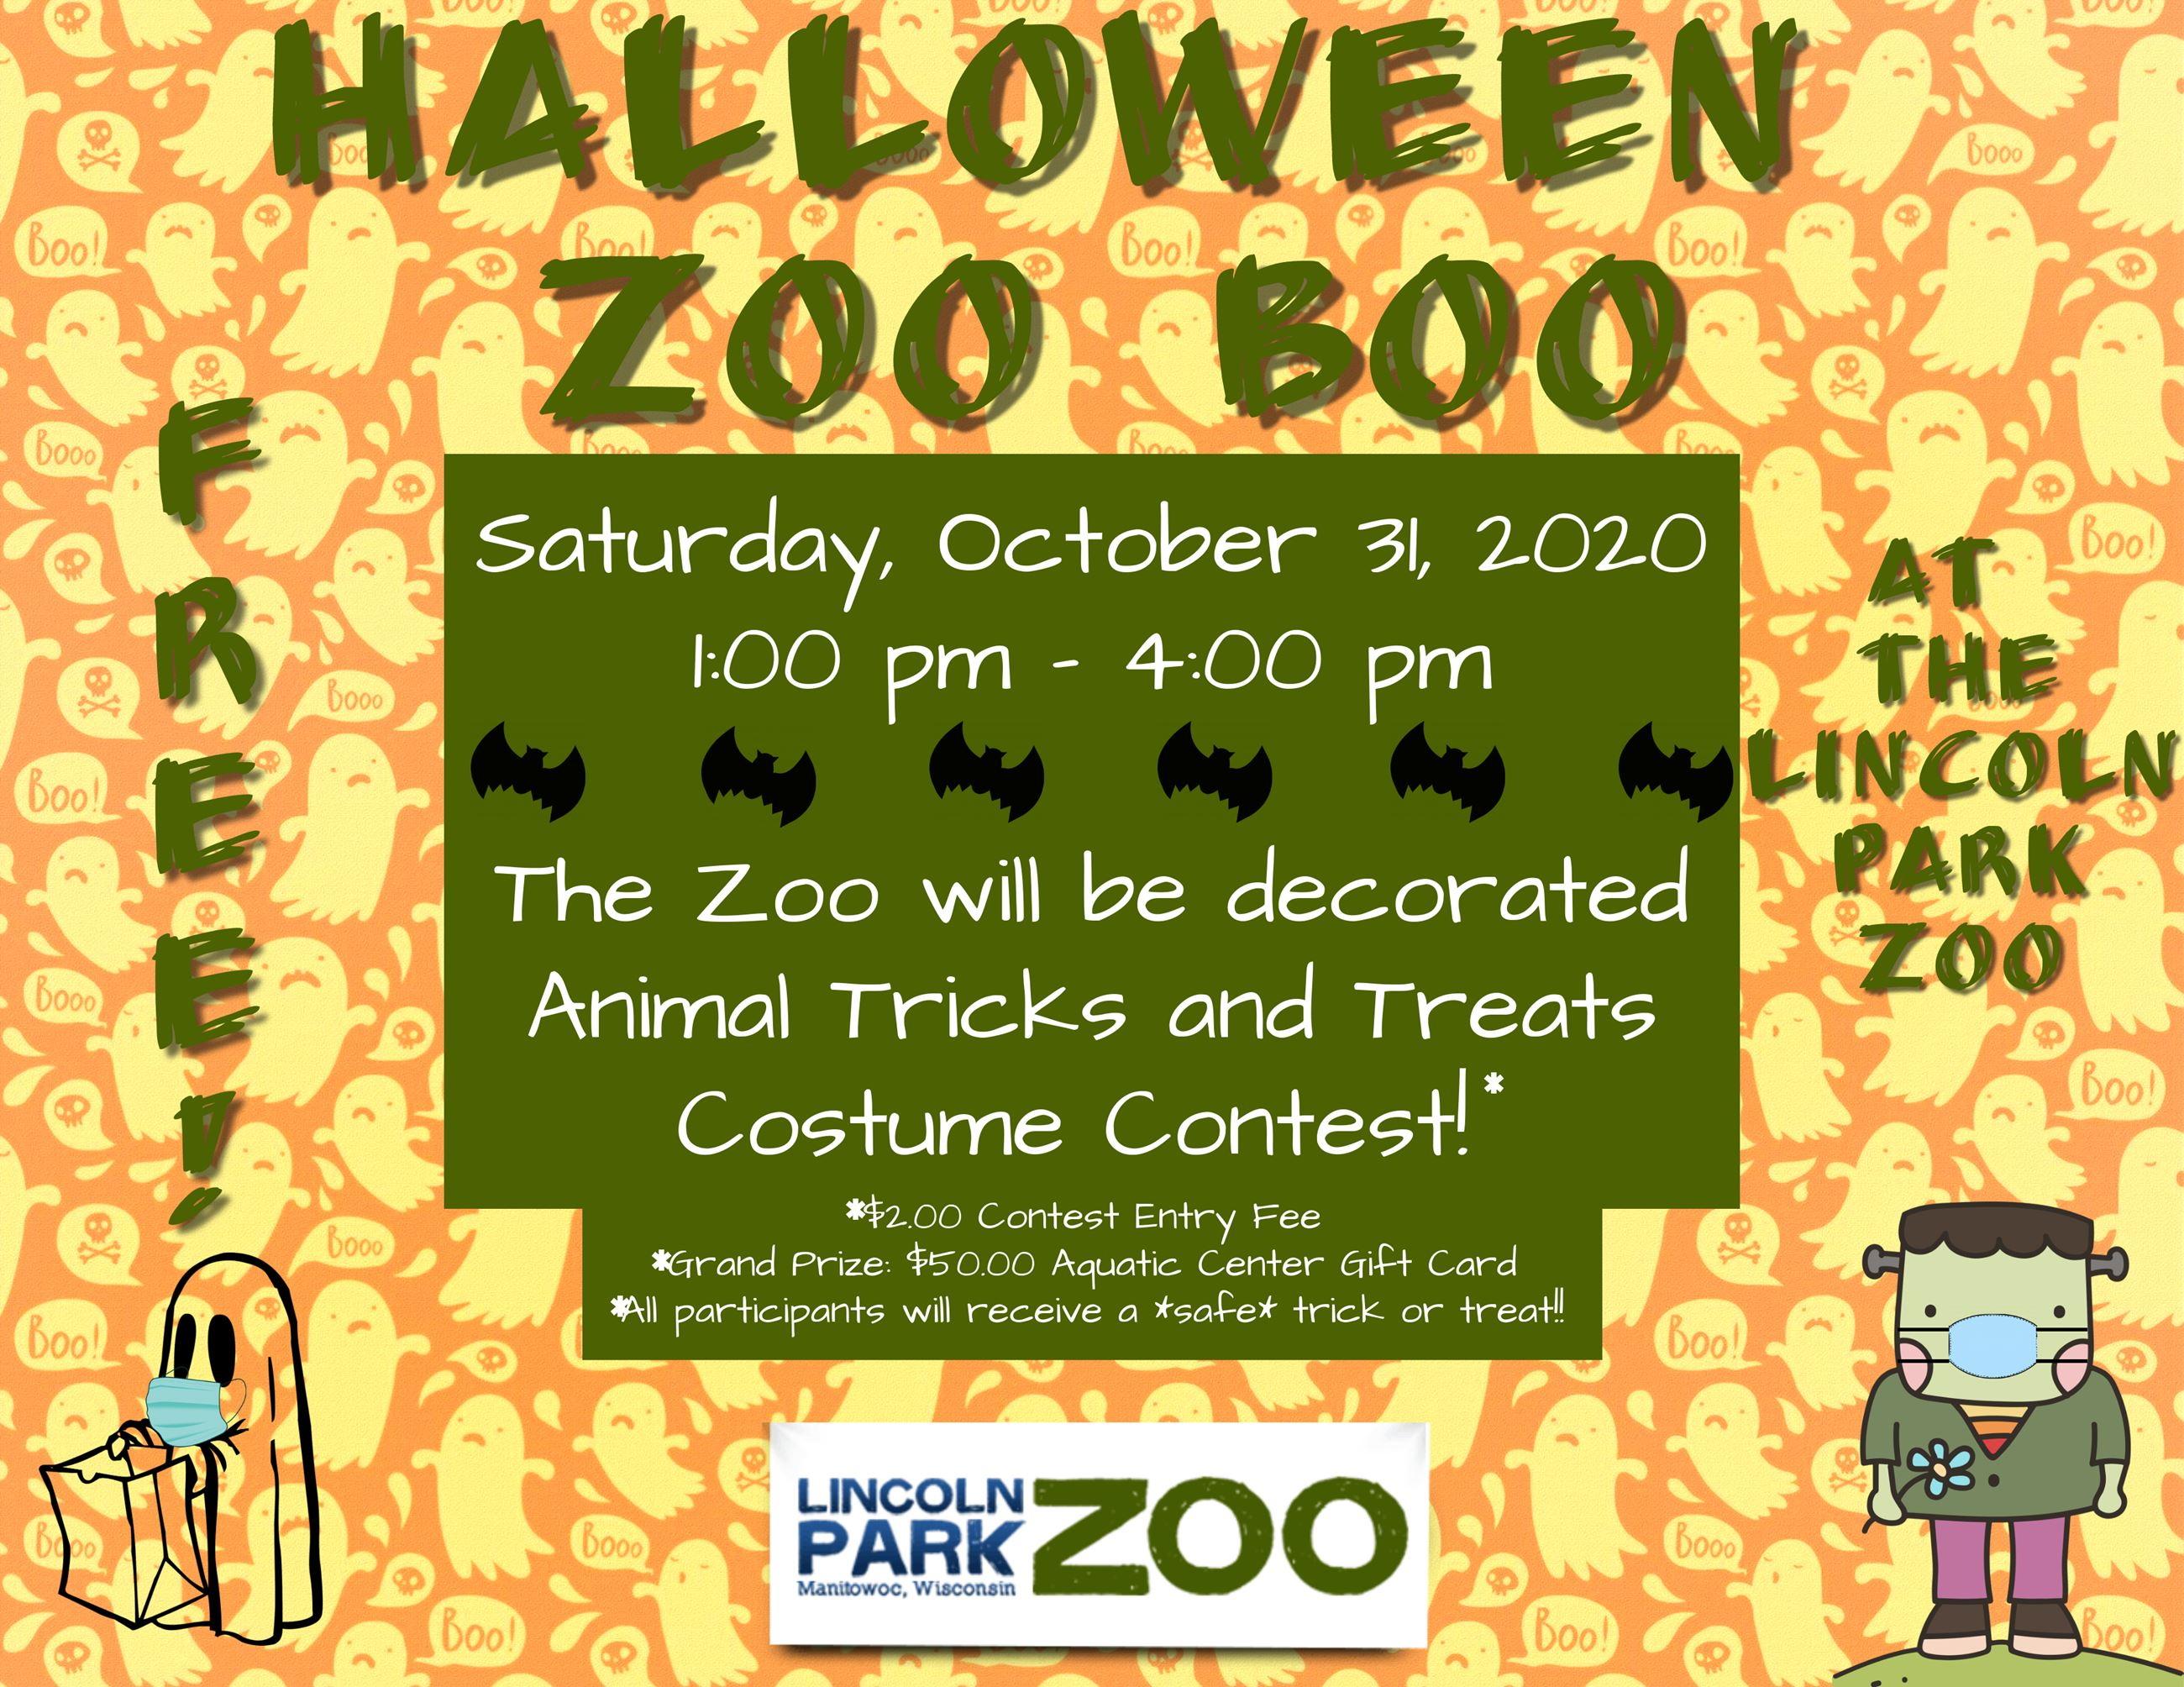 Zoo Boo Updated 10.5 (3)